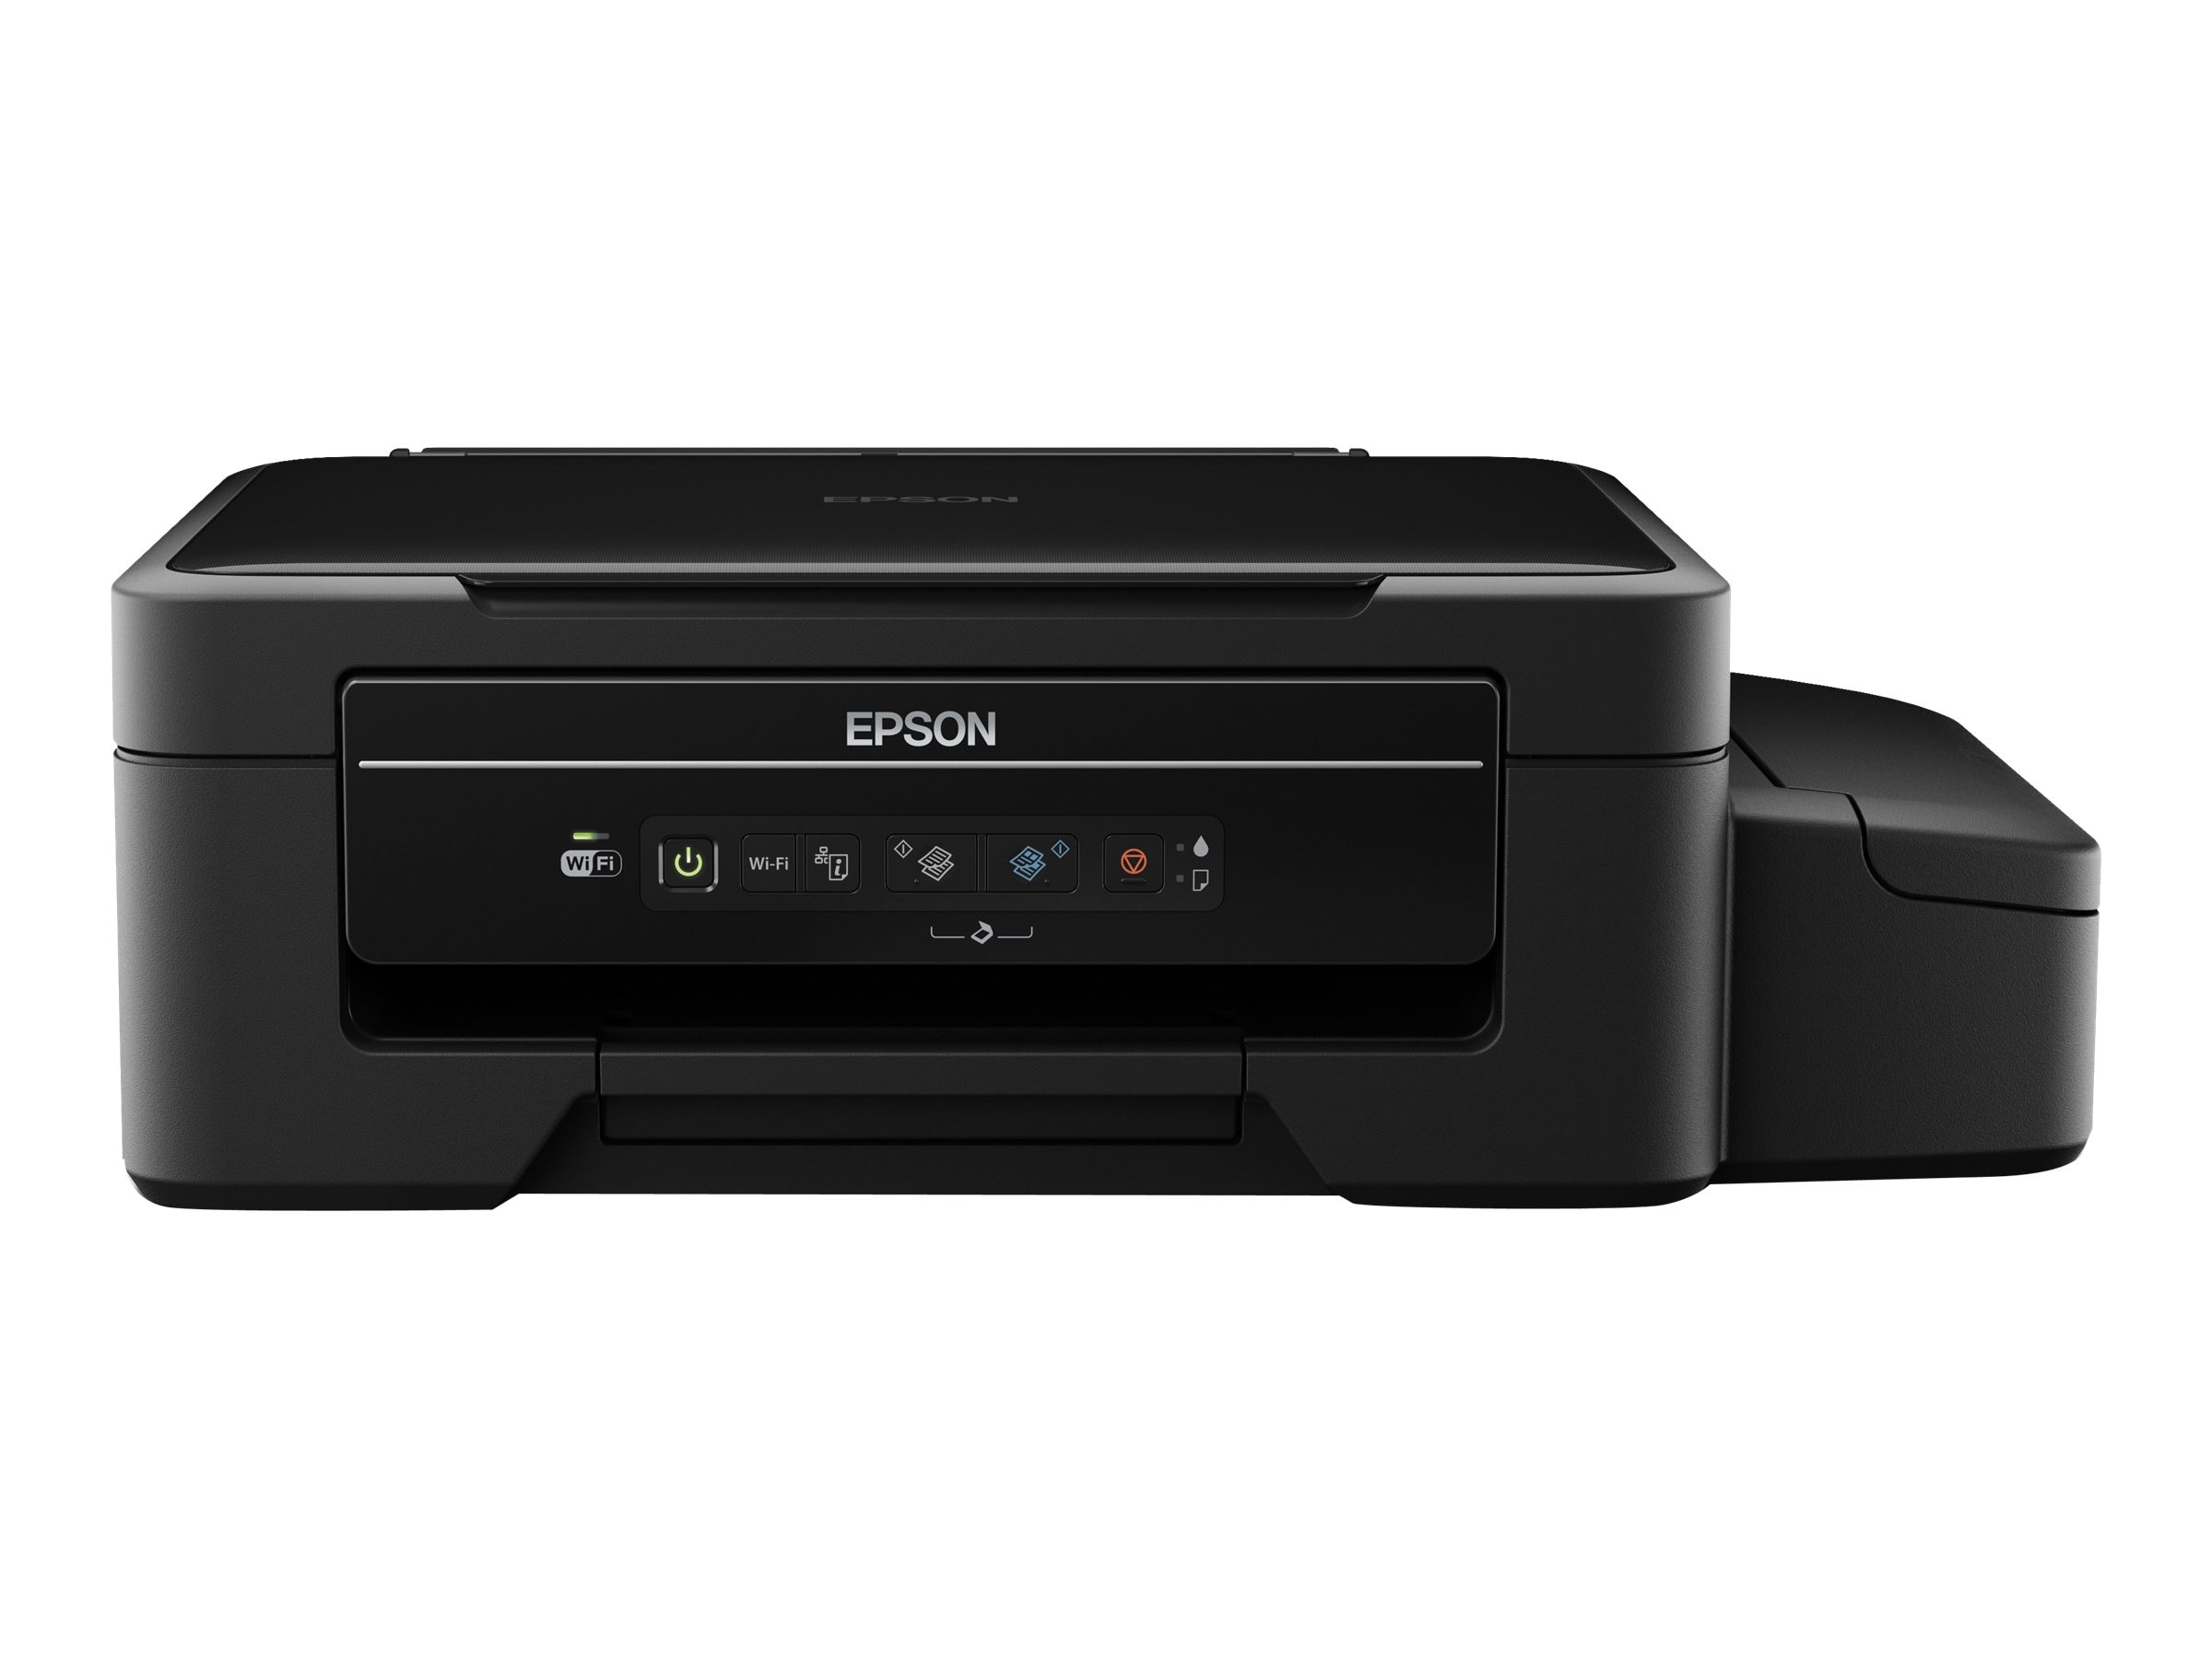 Epson Expression ET-2550 EcoTank All-in-One Printer, C11CE91201